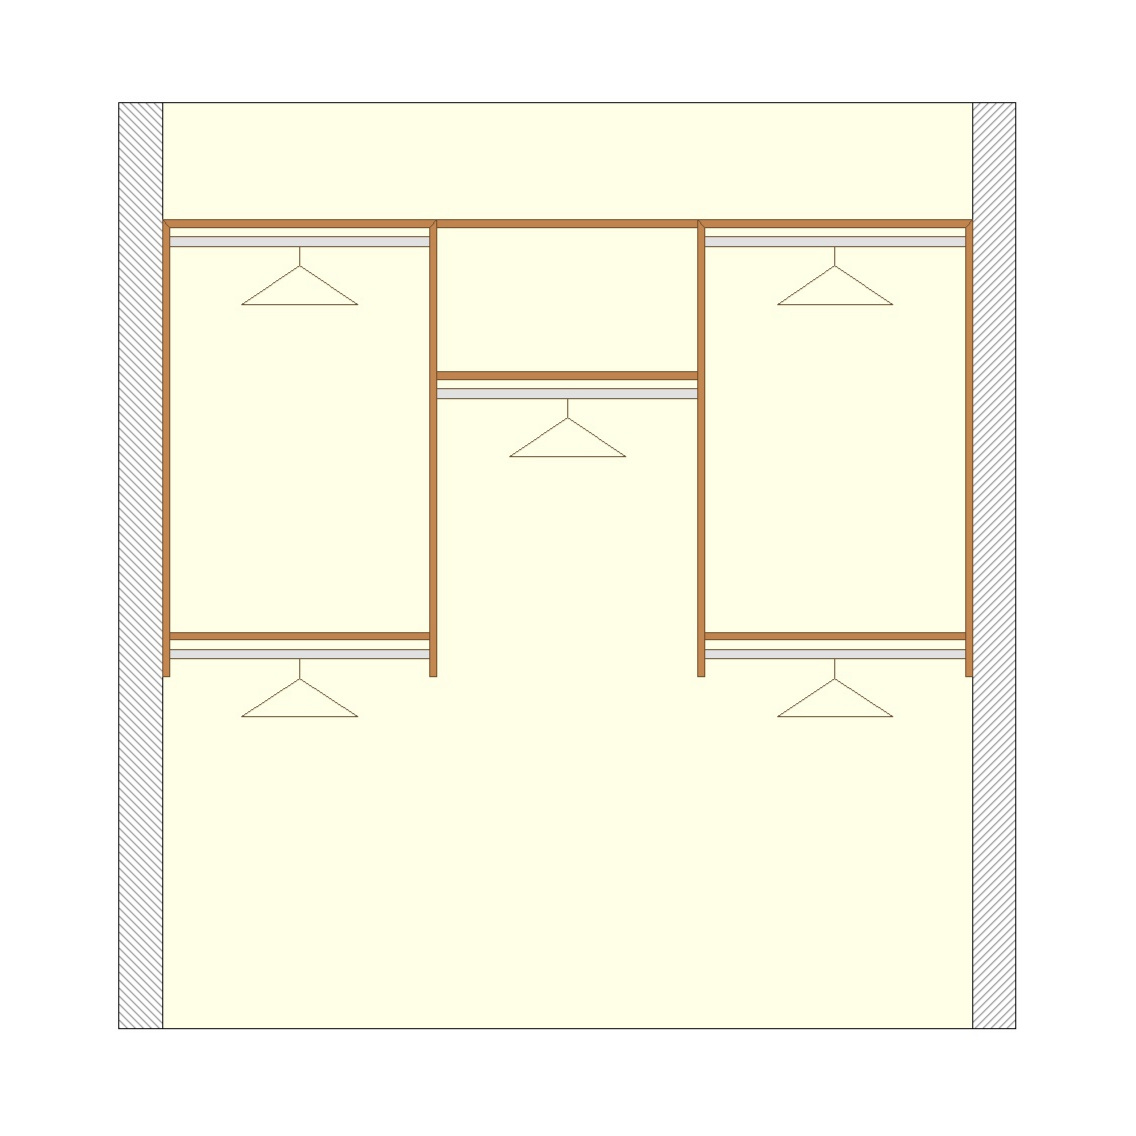 Basic reach-in closet configuration